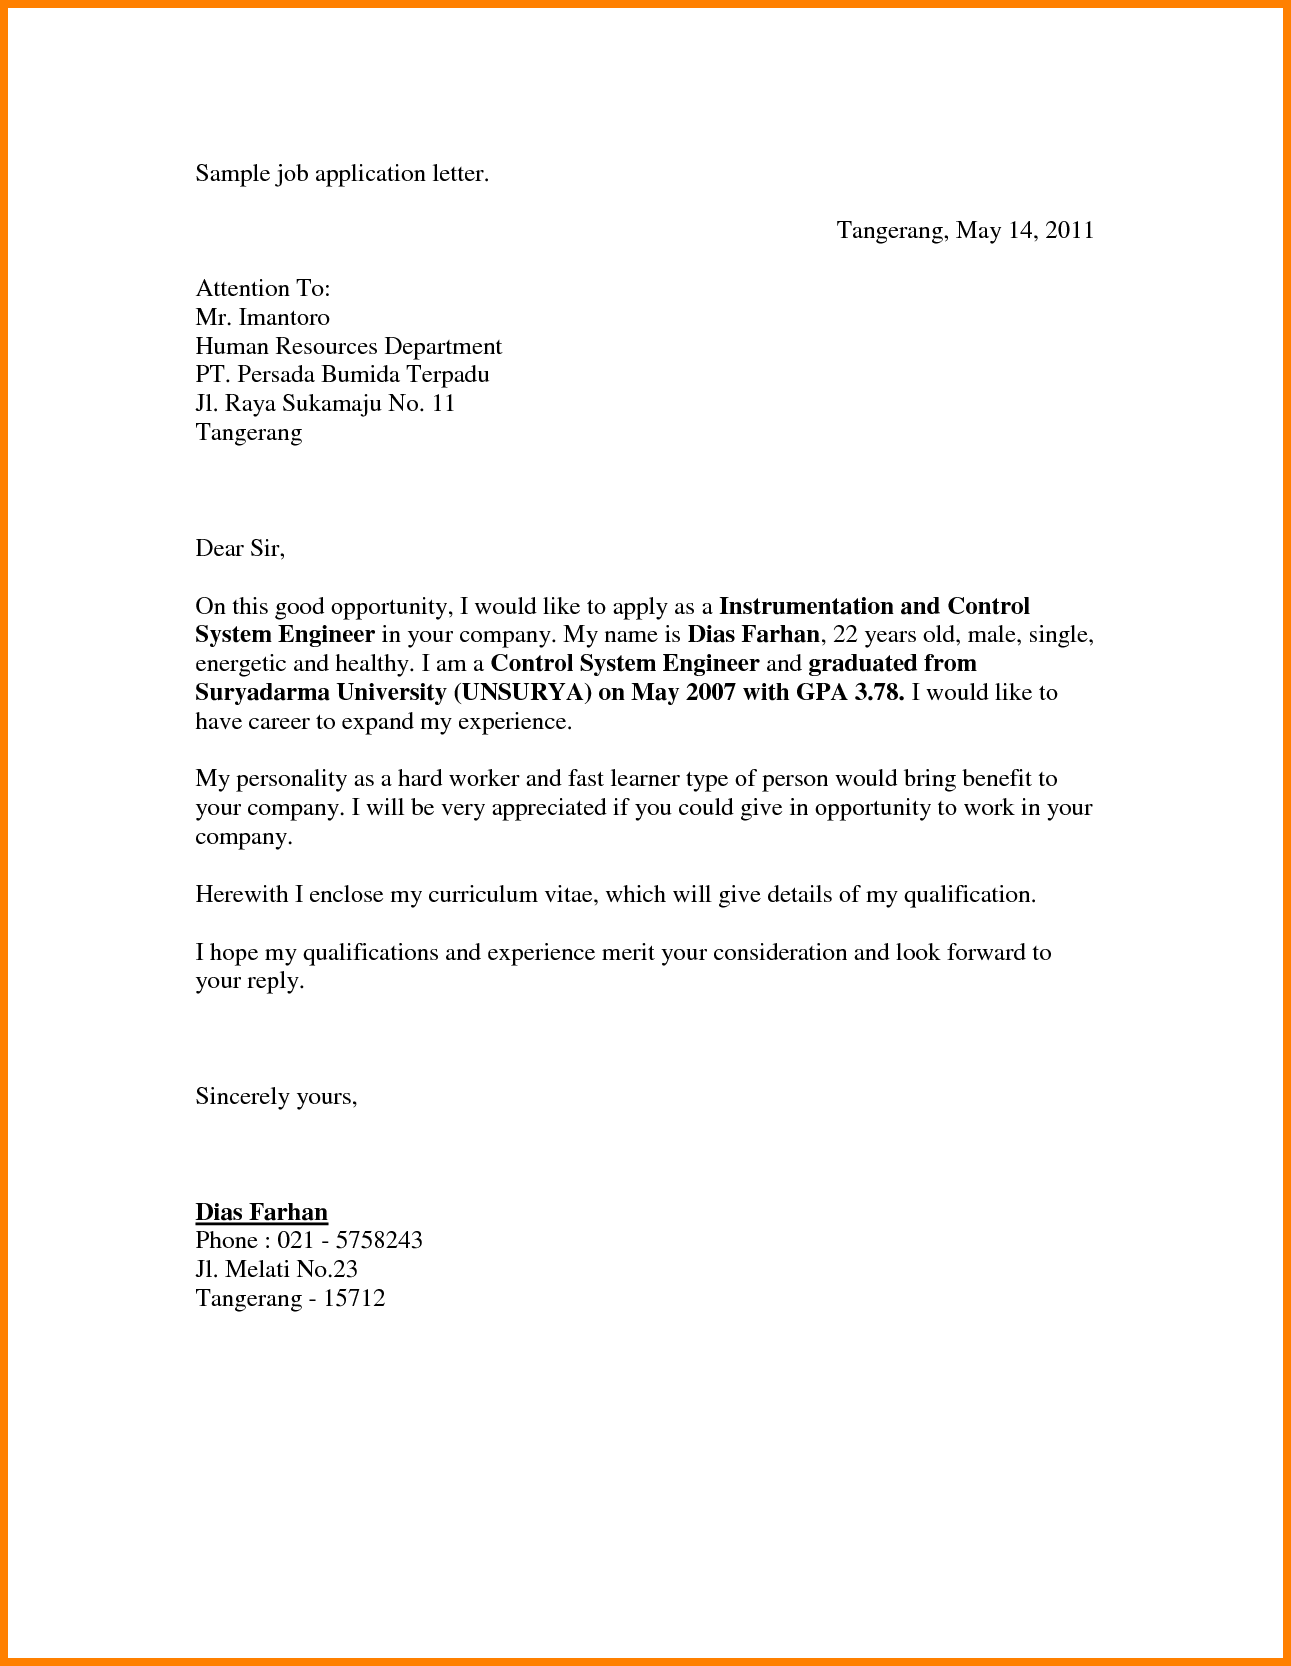 Sample job application letter by dedew93 | desktop | Pinterest ...